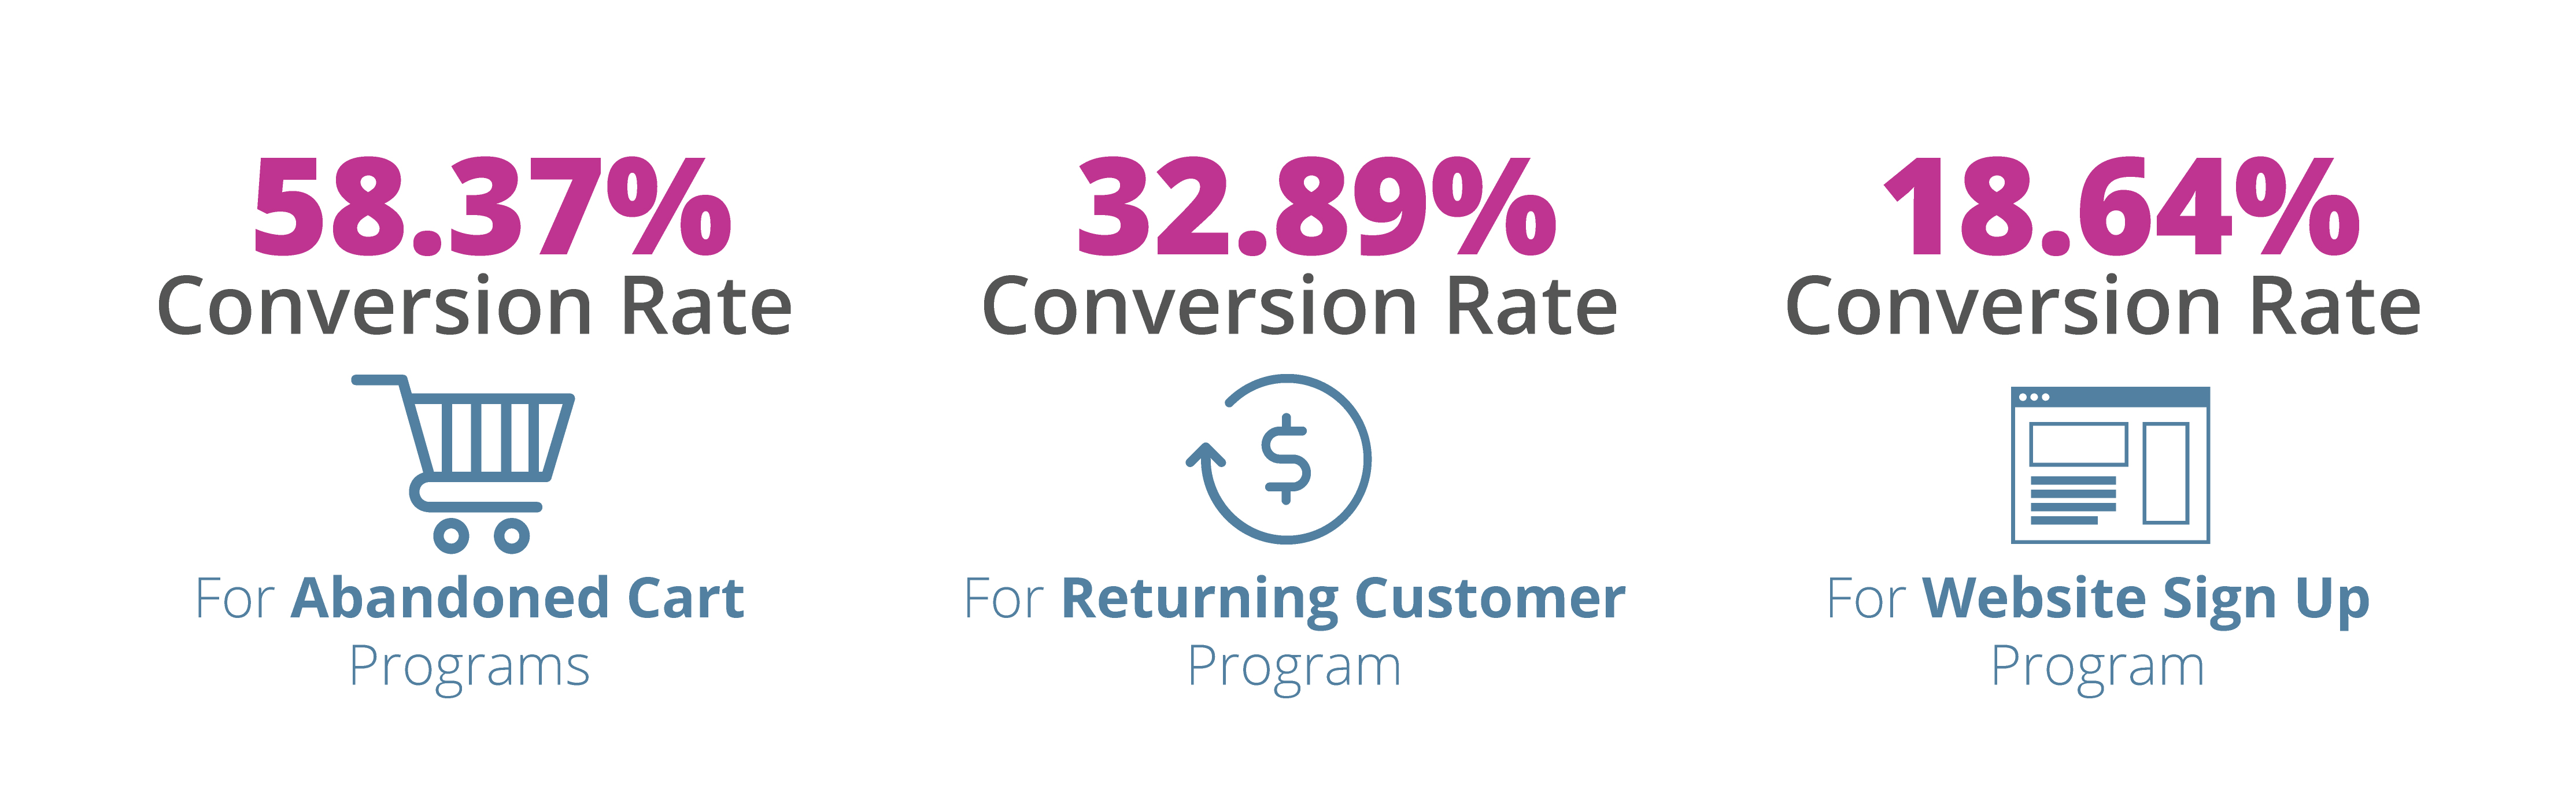 Marketing Automation Conversion Rate